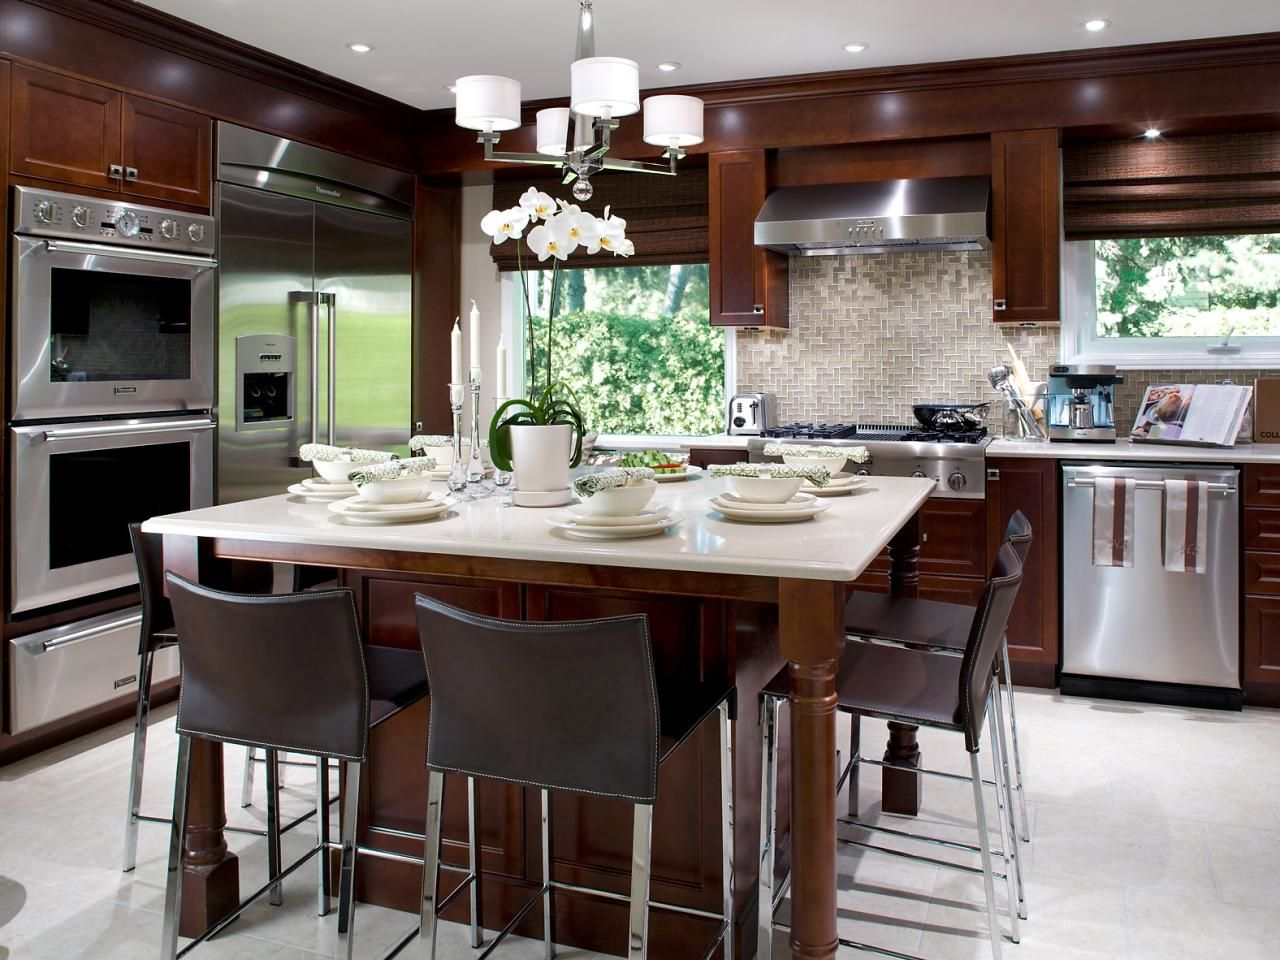 Practical Style Rich Cabinetry State Of The Art Appliances And A